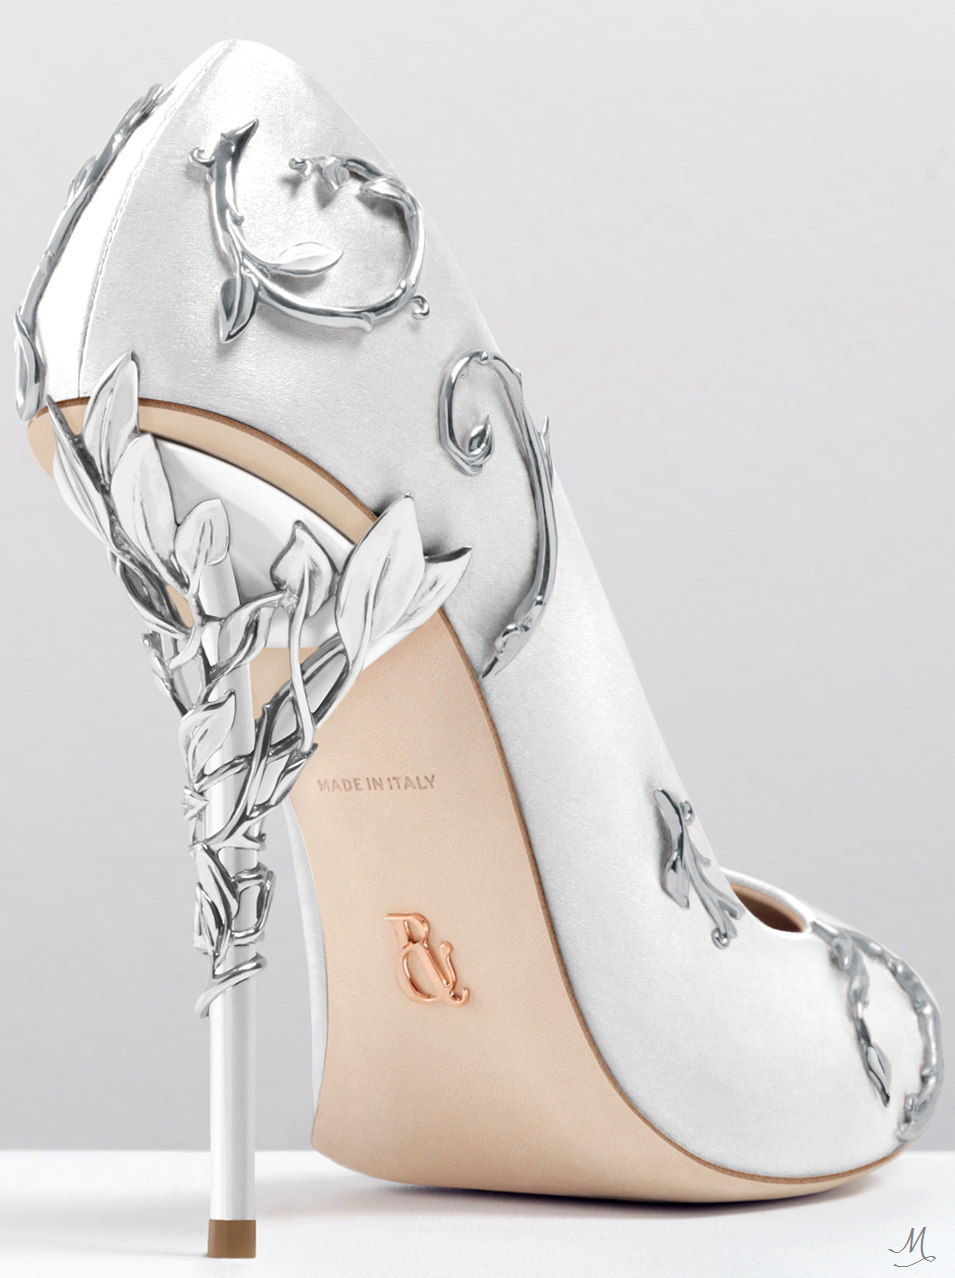 aa72181c00 RALPH & RUSSO EDEN PUMP WHITE SATIN WITH SILVER LEAVES | Pumps ...